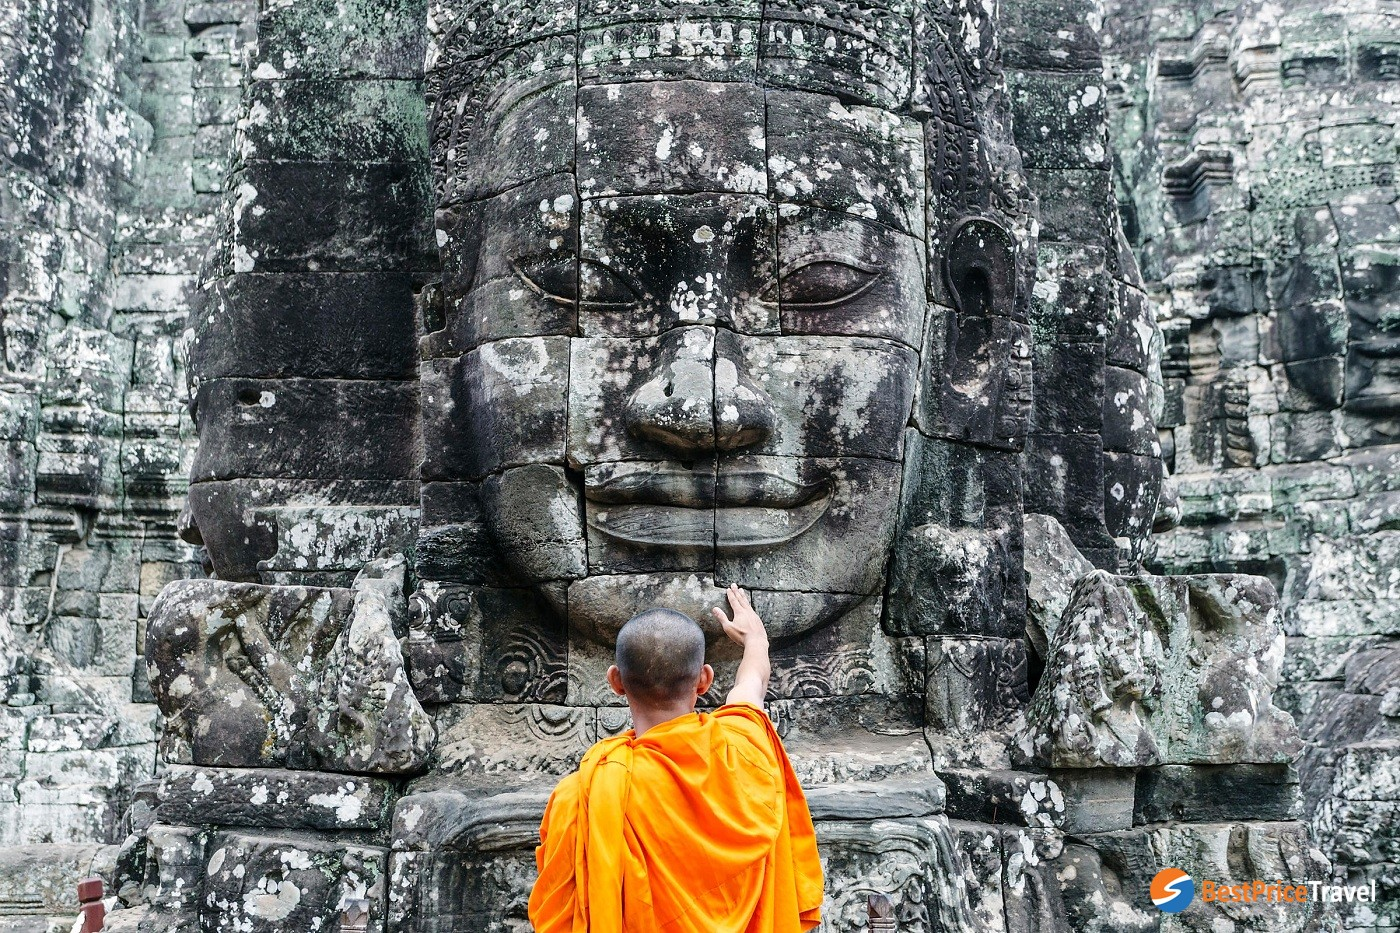 Indochina is known to be a land of mysteries